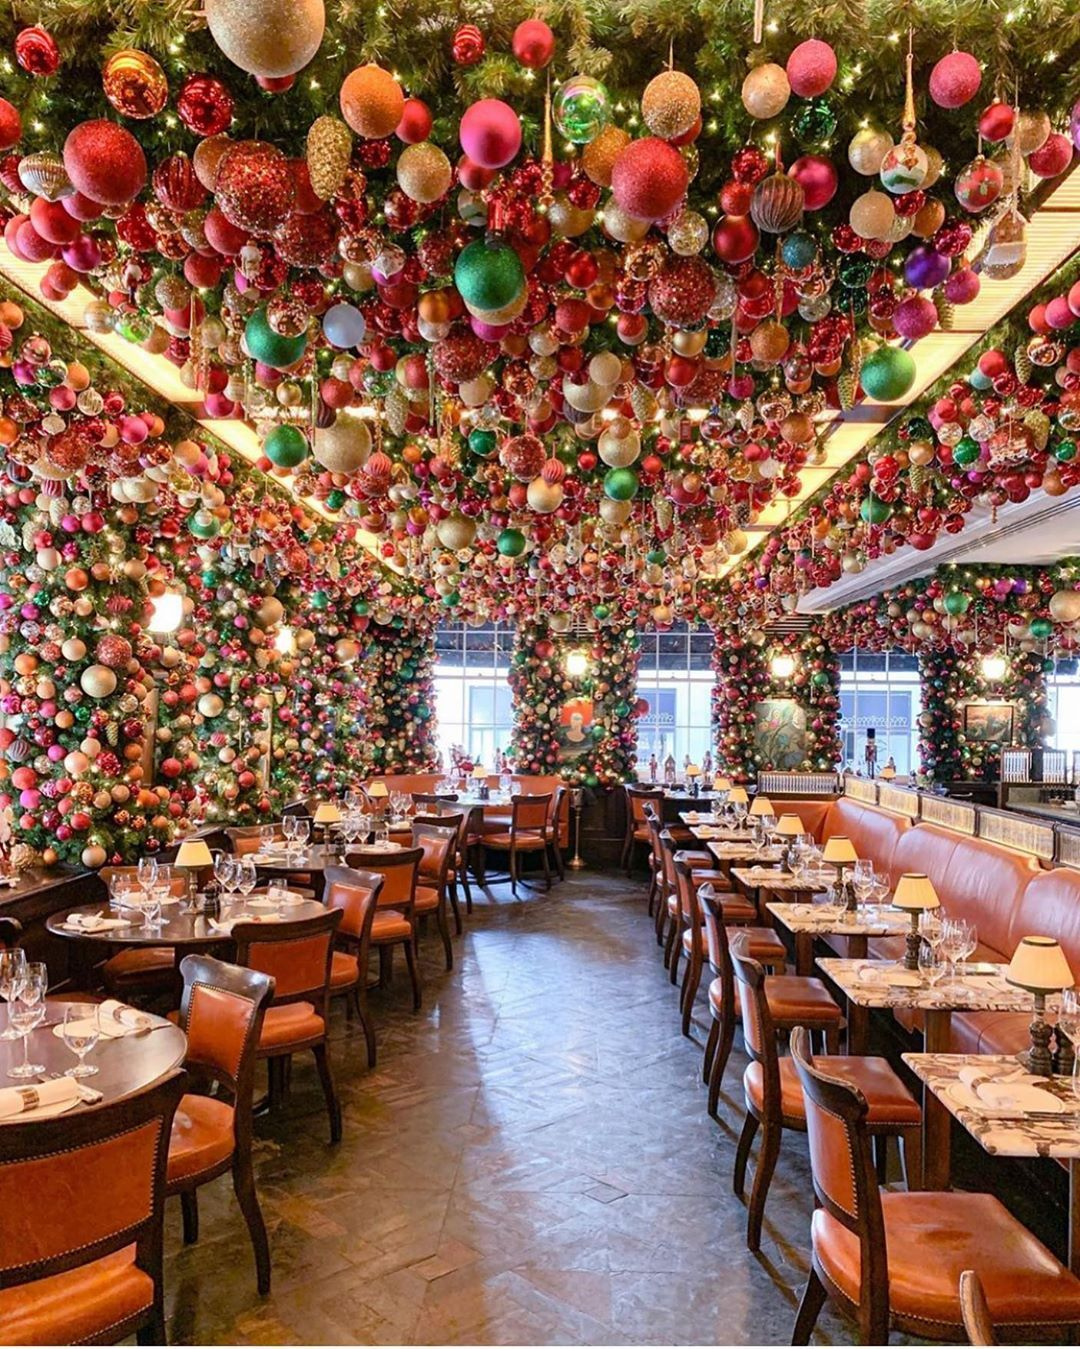 The Most Comprehensive List Of The Most Instagrammable Cafes In London Together With The Prettiest D In 2020 London Christmas Christmas Decorations Festive Dining Room